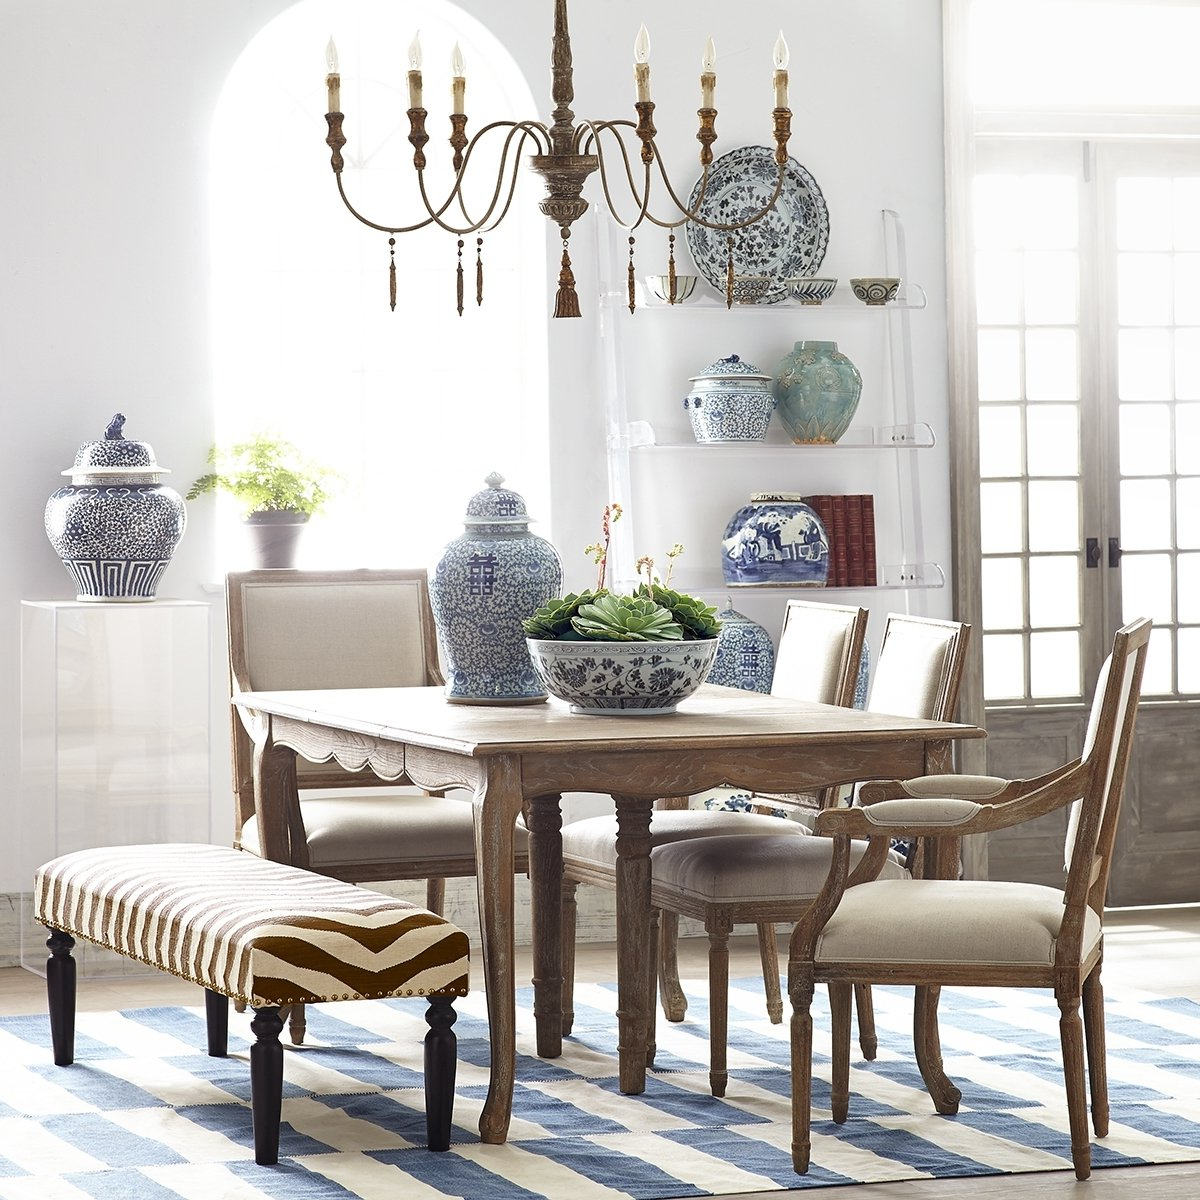 Trendy Walnut And Antique White Finish Contemporary Country Dining Tables With Regard To 50+ French Country Dining Table You'll Love In 2020 – Visual (Gallery 6 of 30)